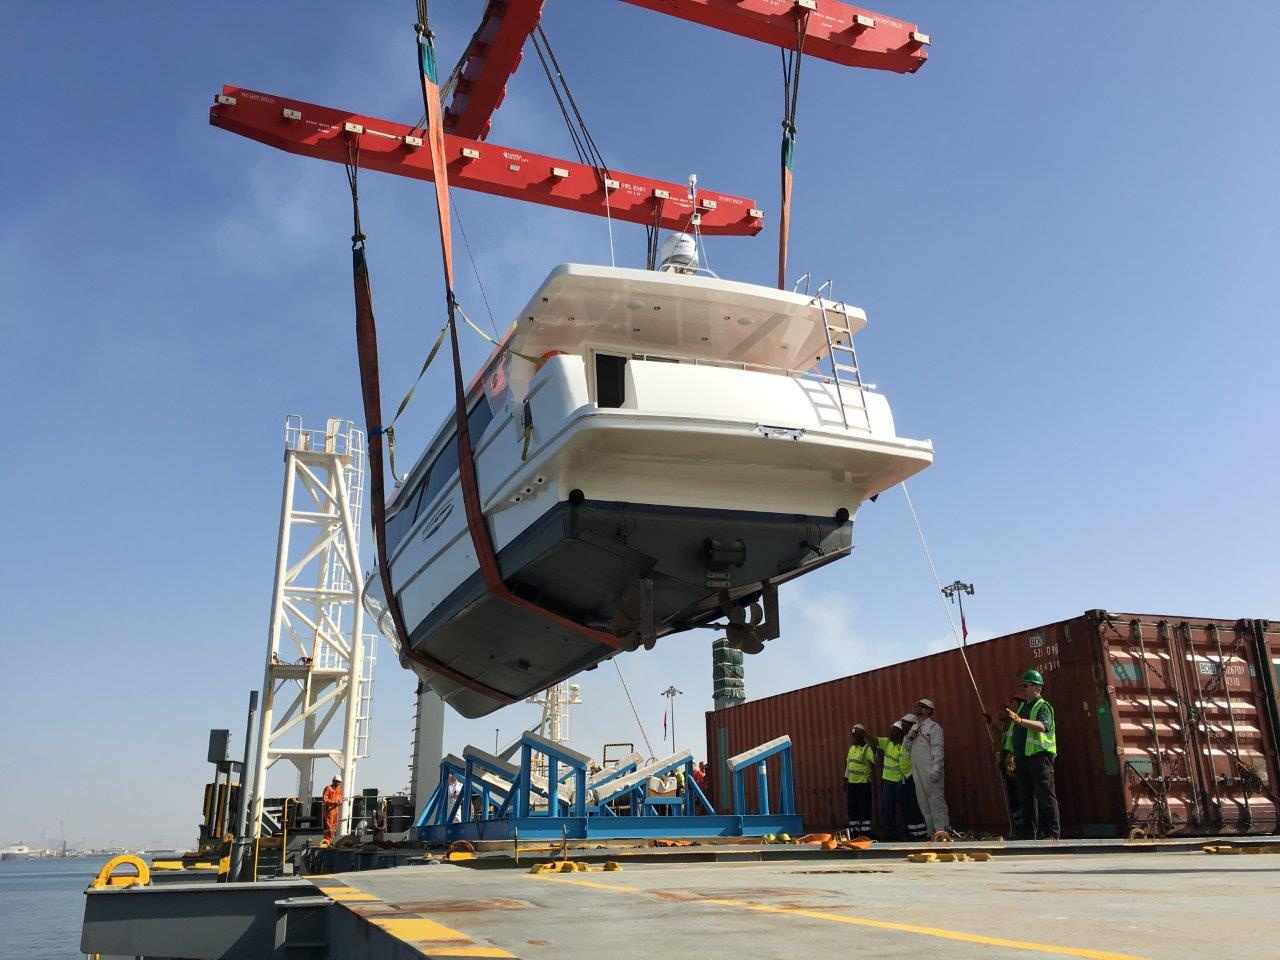 The complex task of shipping large boats like the Waveshuttle 56